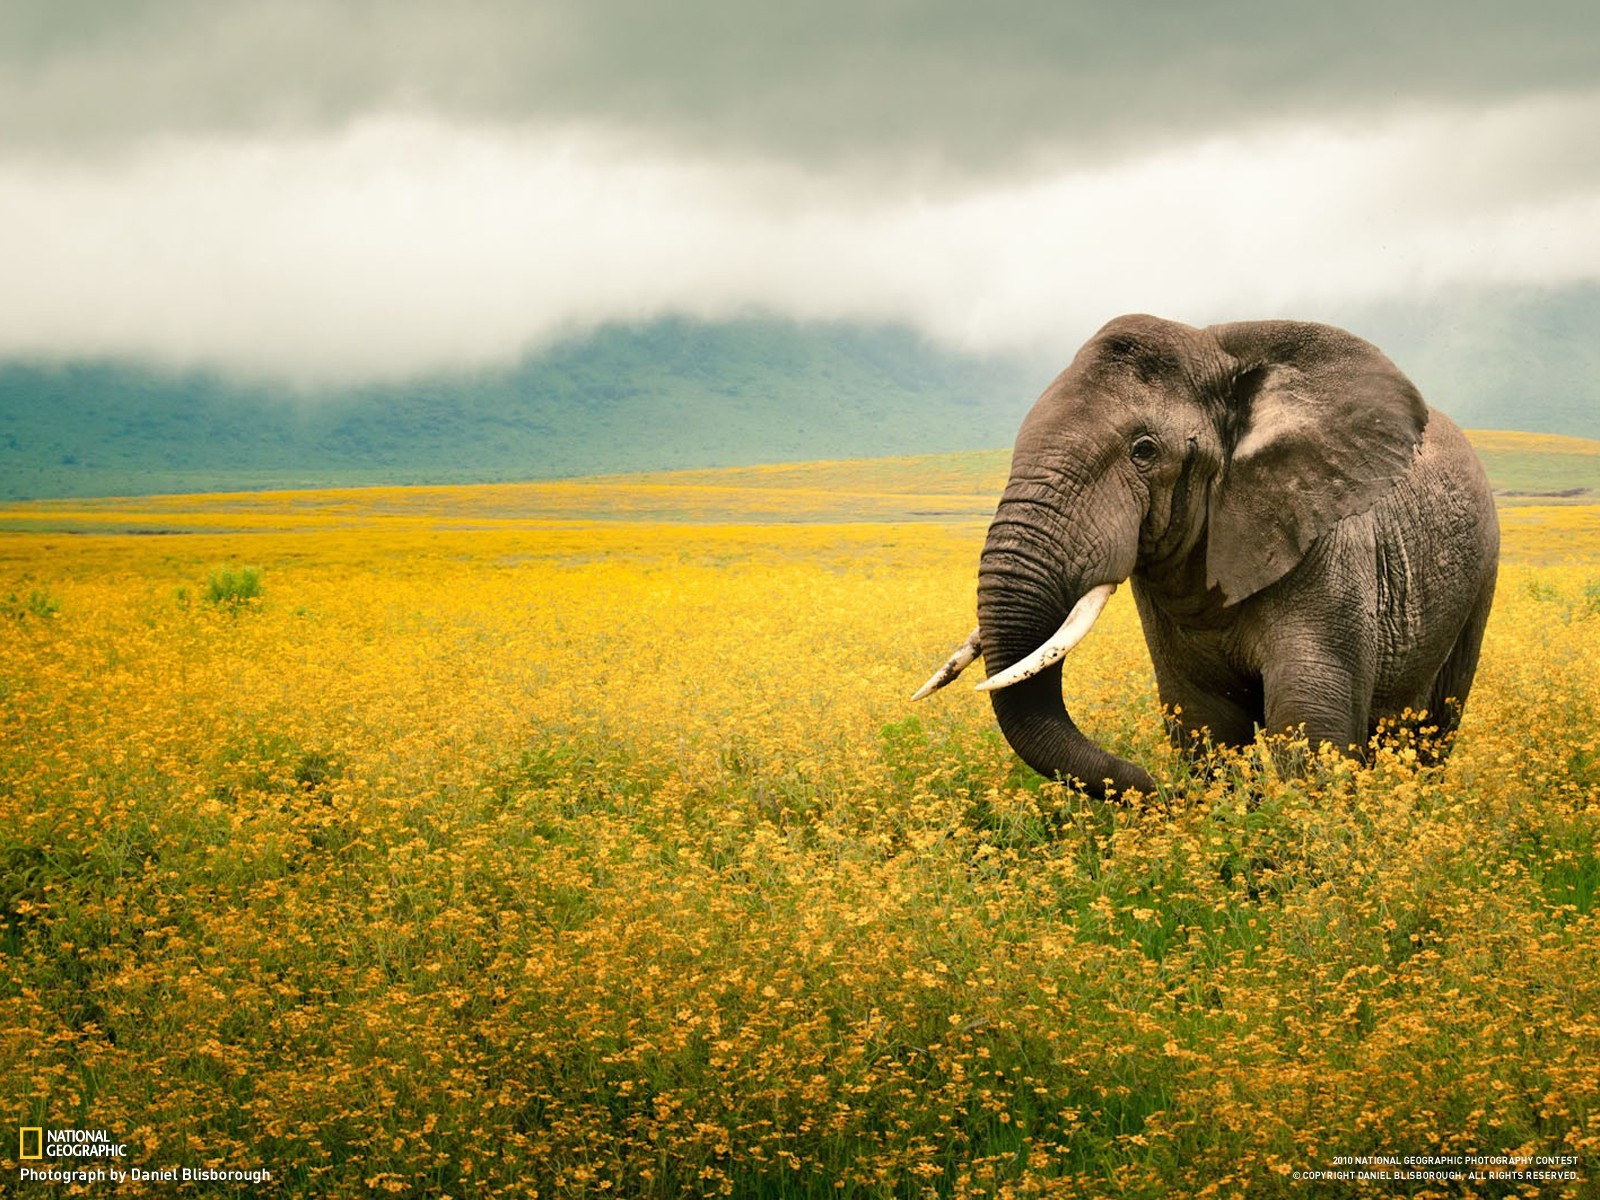 Animals fields national geographic HD Wallpaper